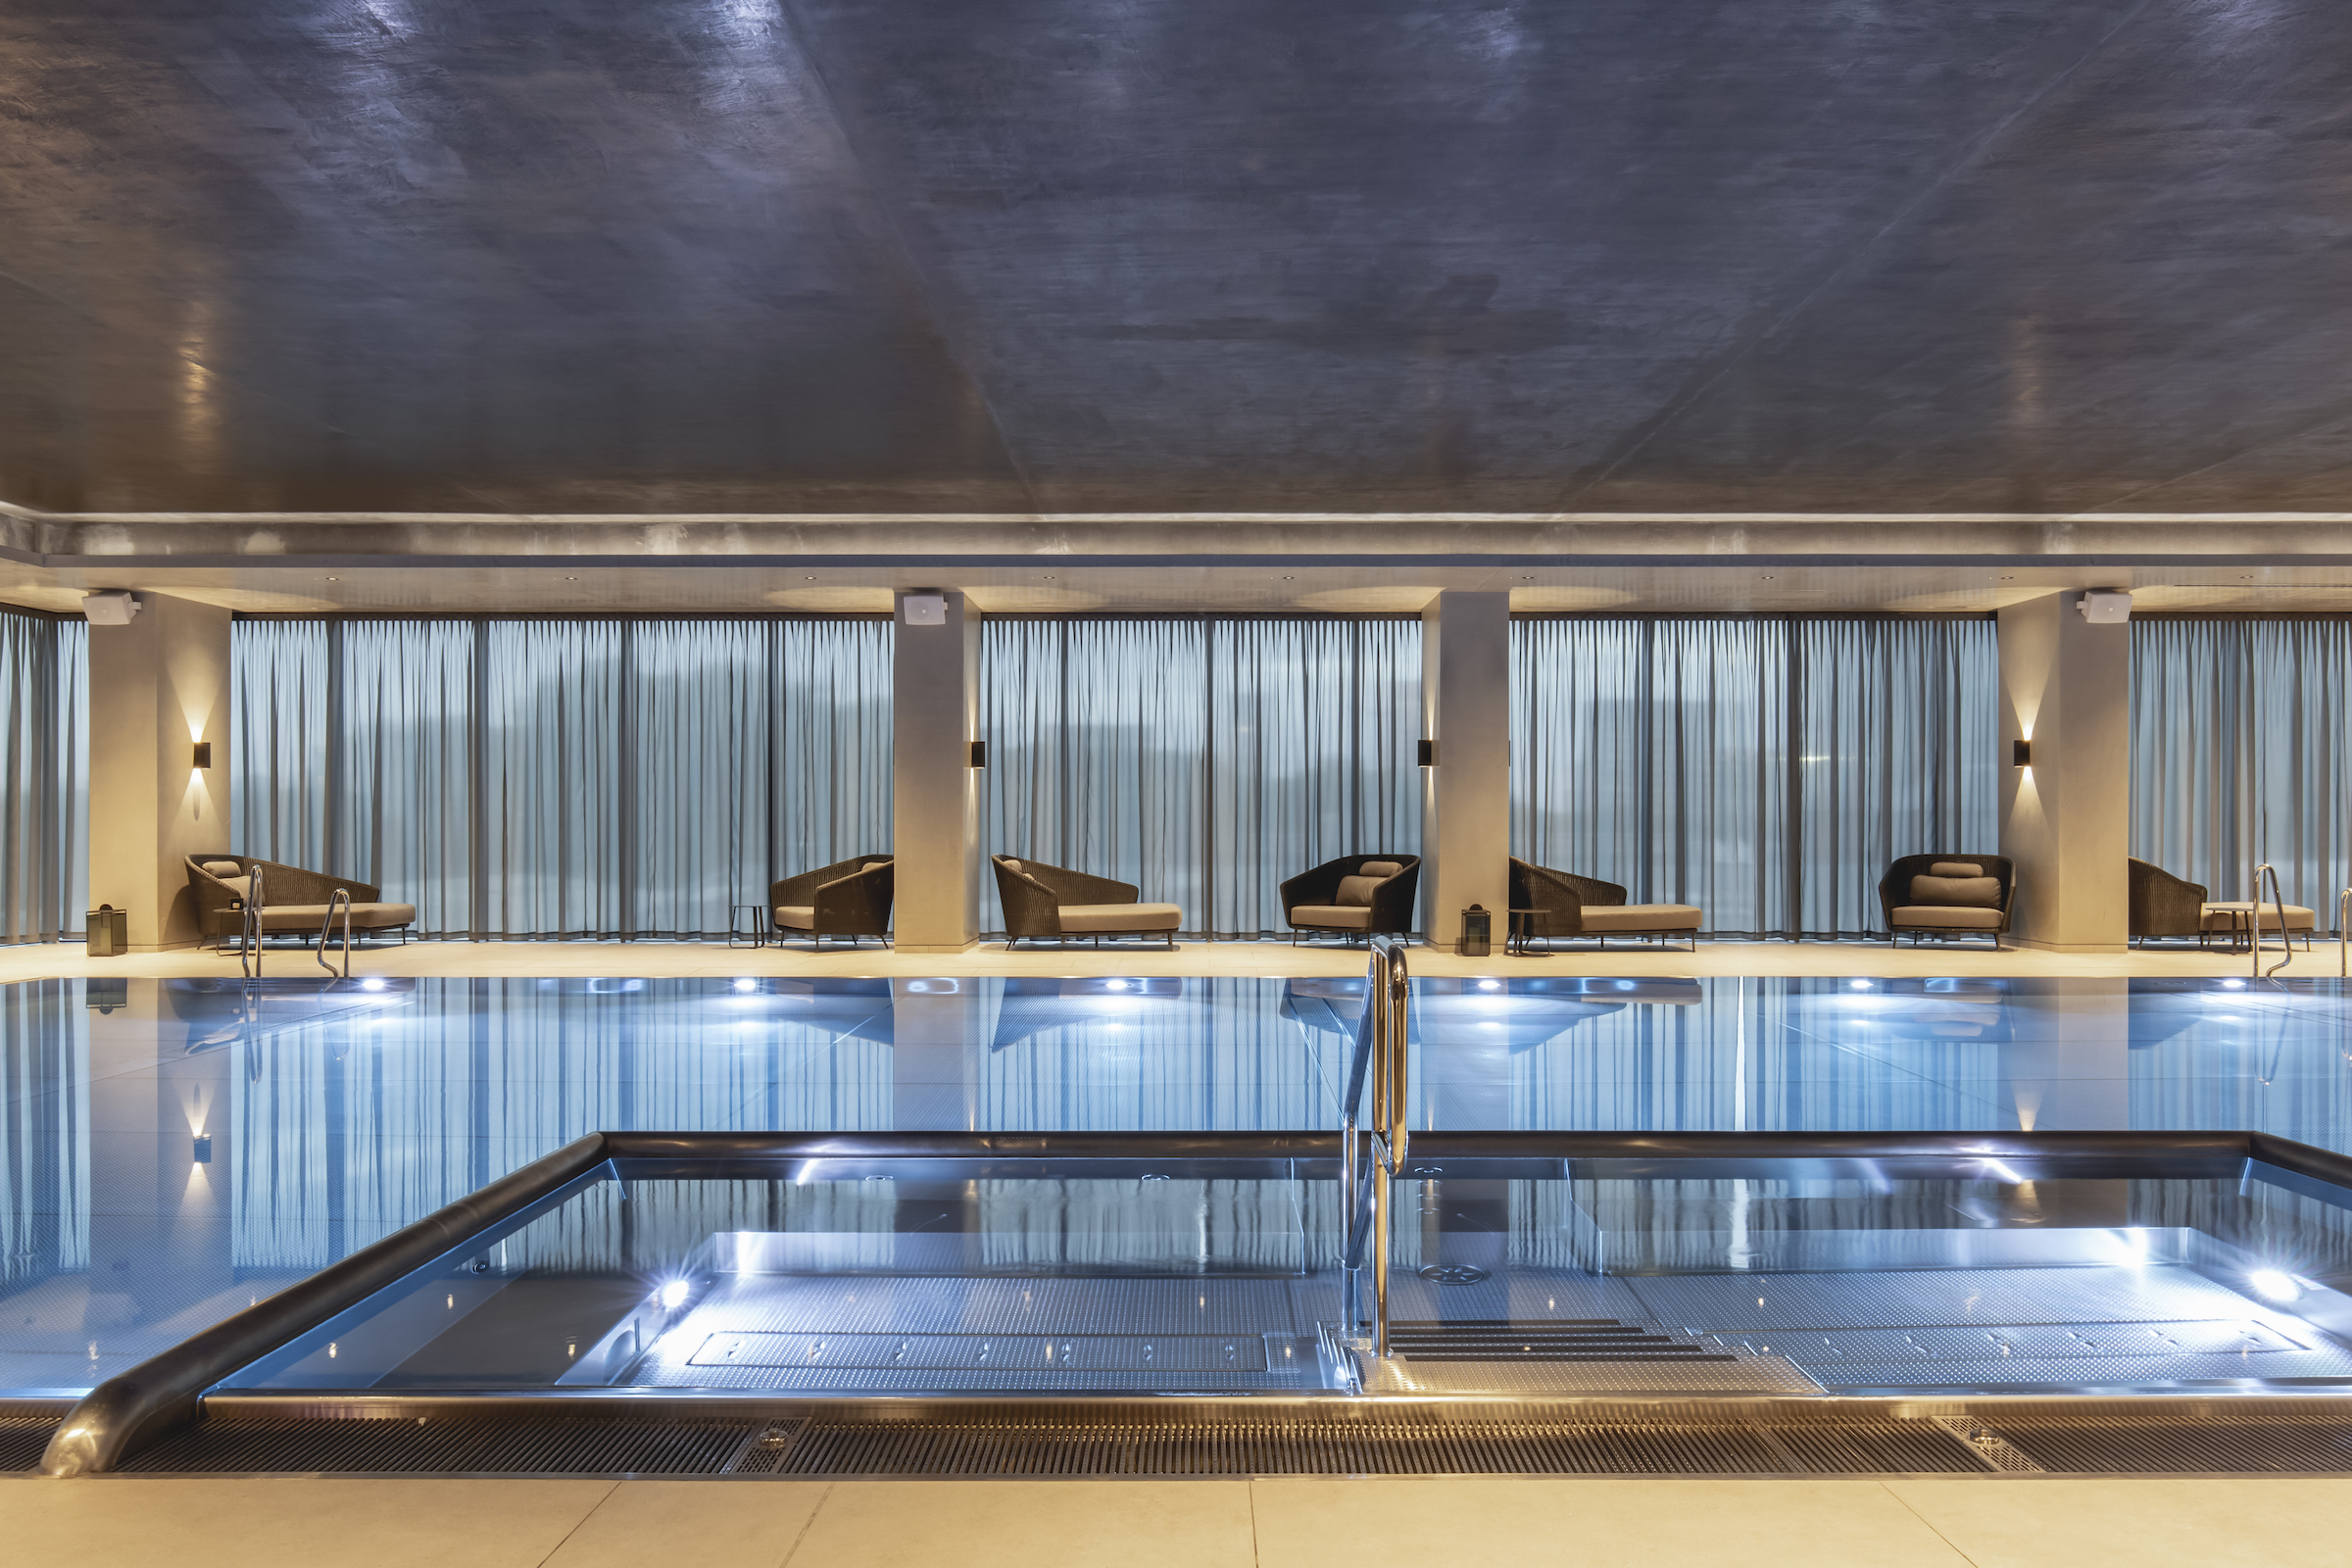 A CGI render of the swimming pool for Deansgate Square